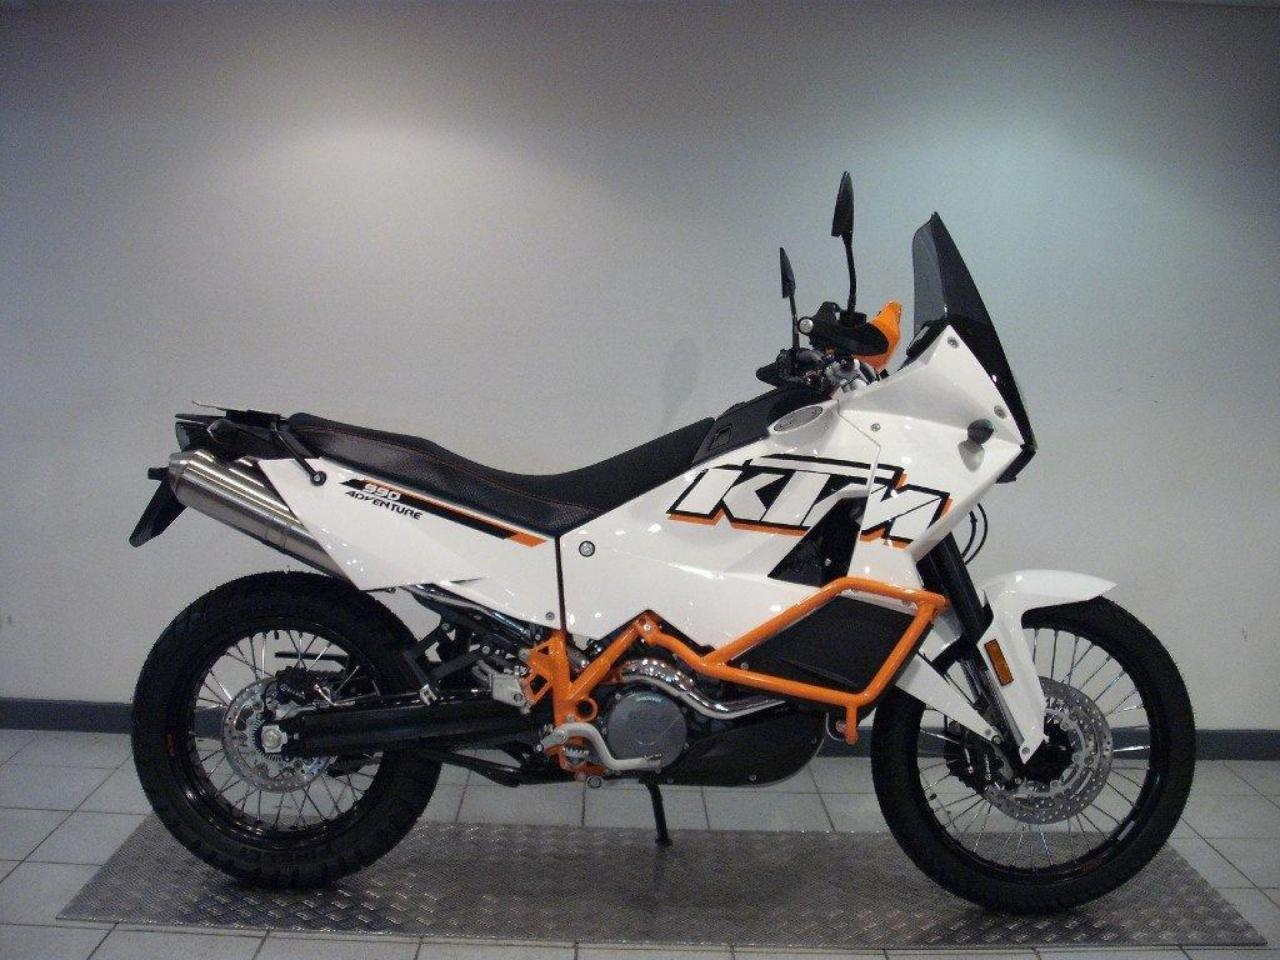 2010 ktm 990 adventure r moto zombdrive com. Black Bedroom Furniture Sets. Home Design Ideas